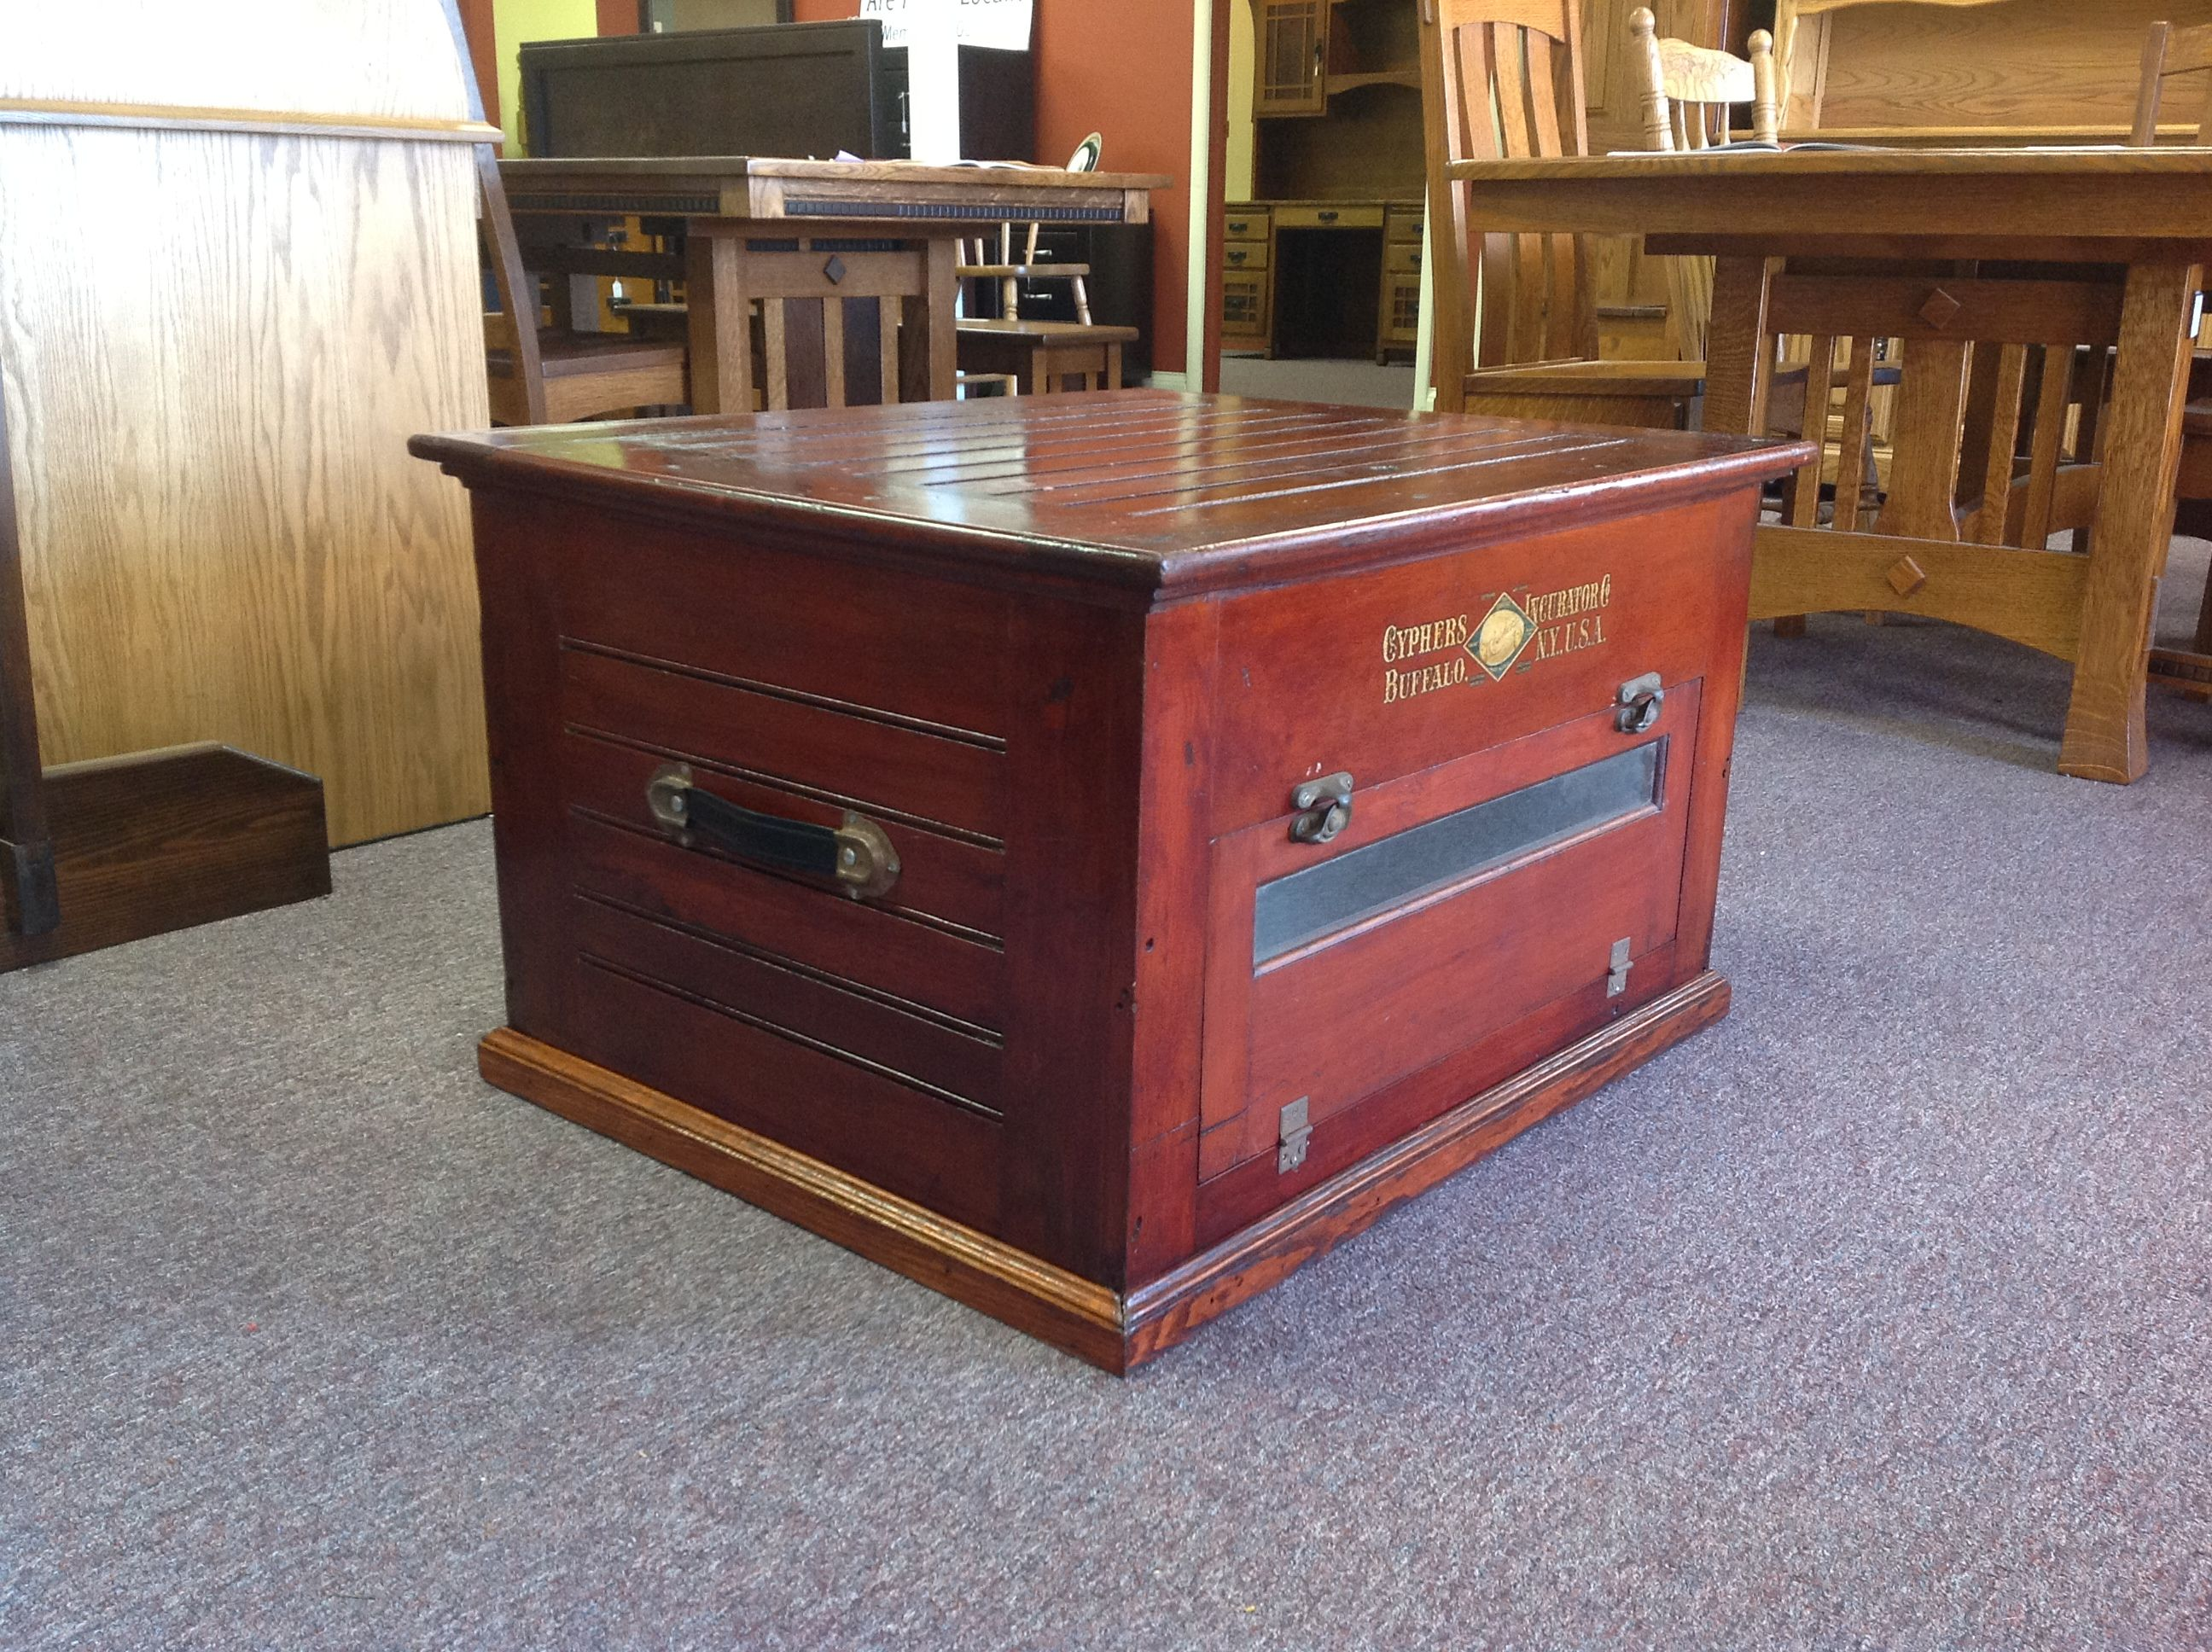 Cabinet Incubator Kit Antique Super Hatcher Wood Chicken Incubator Complete Ready To